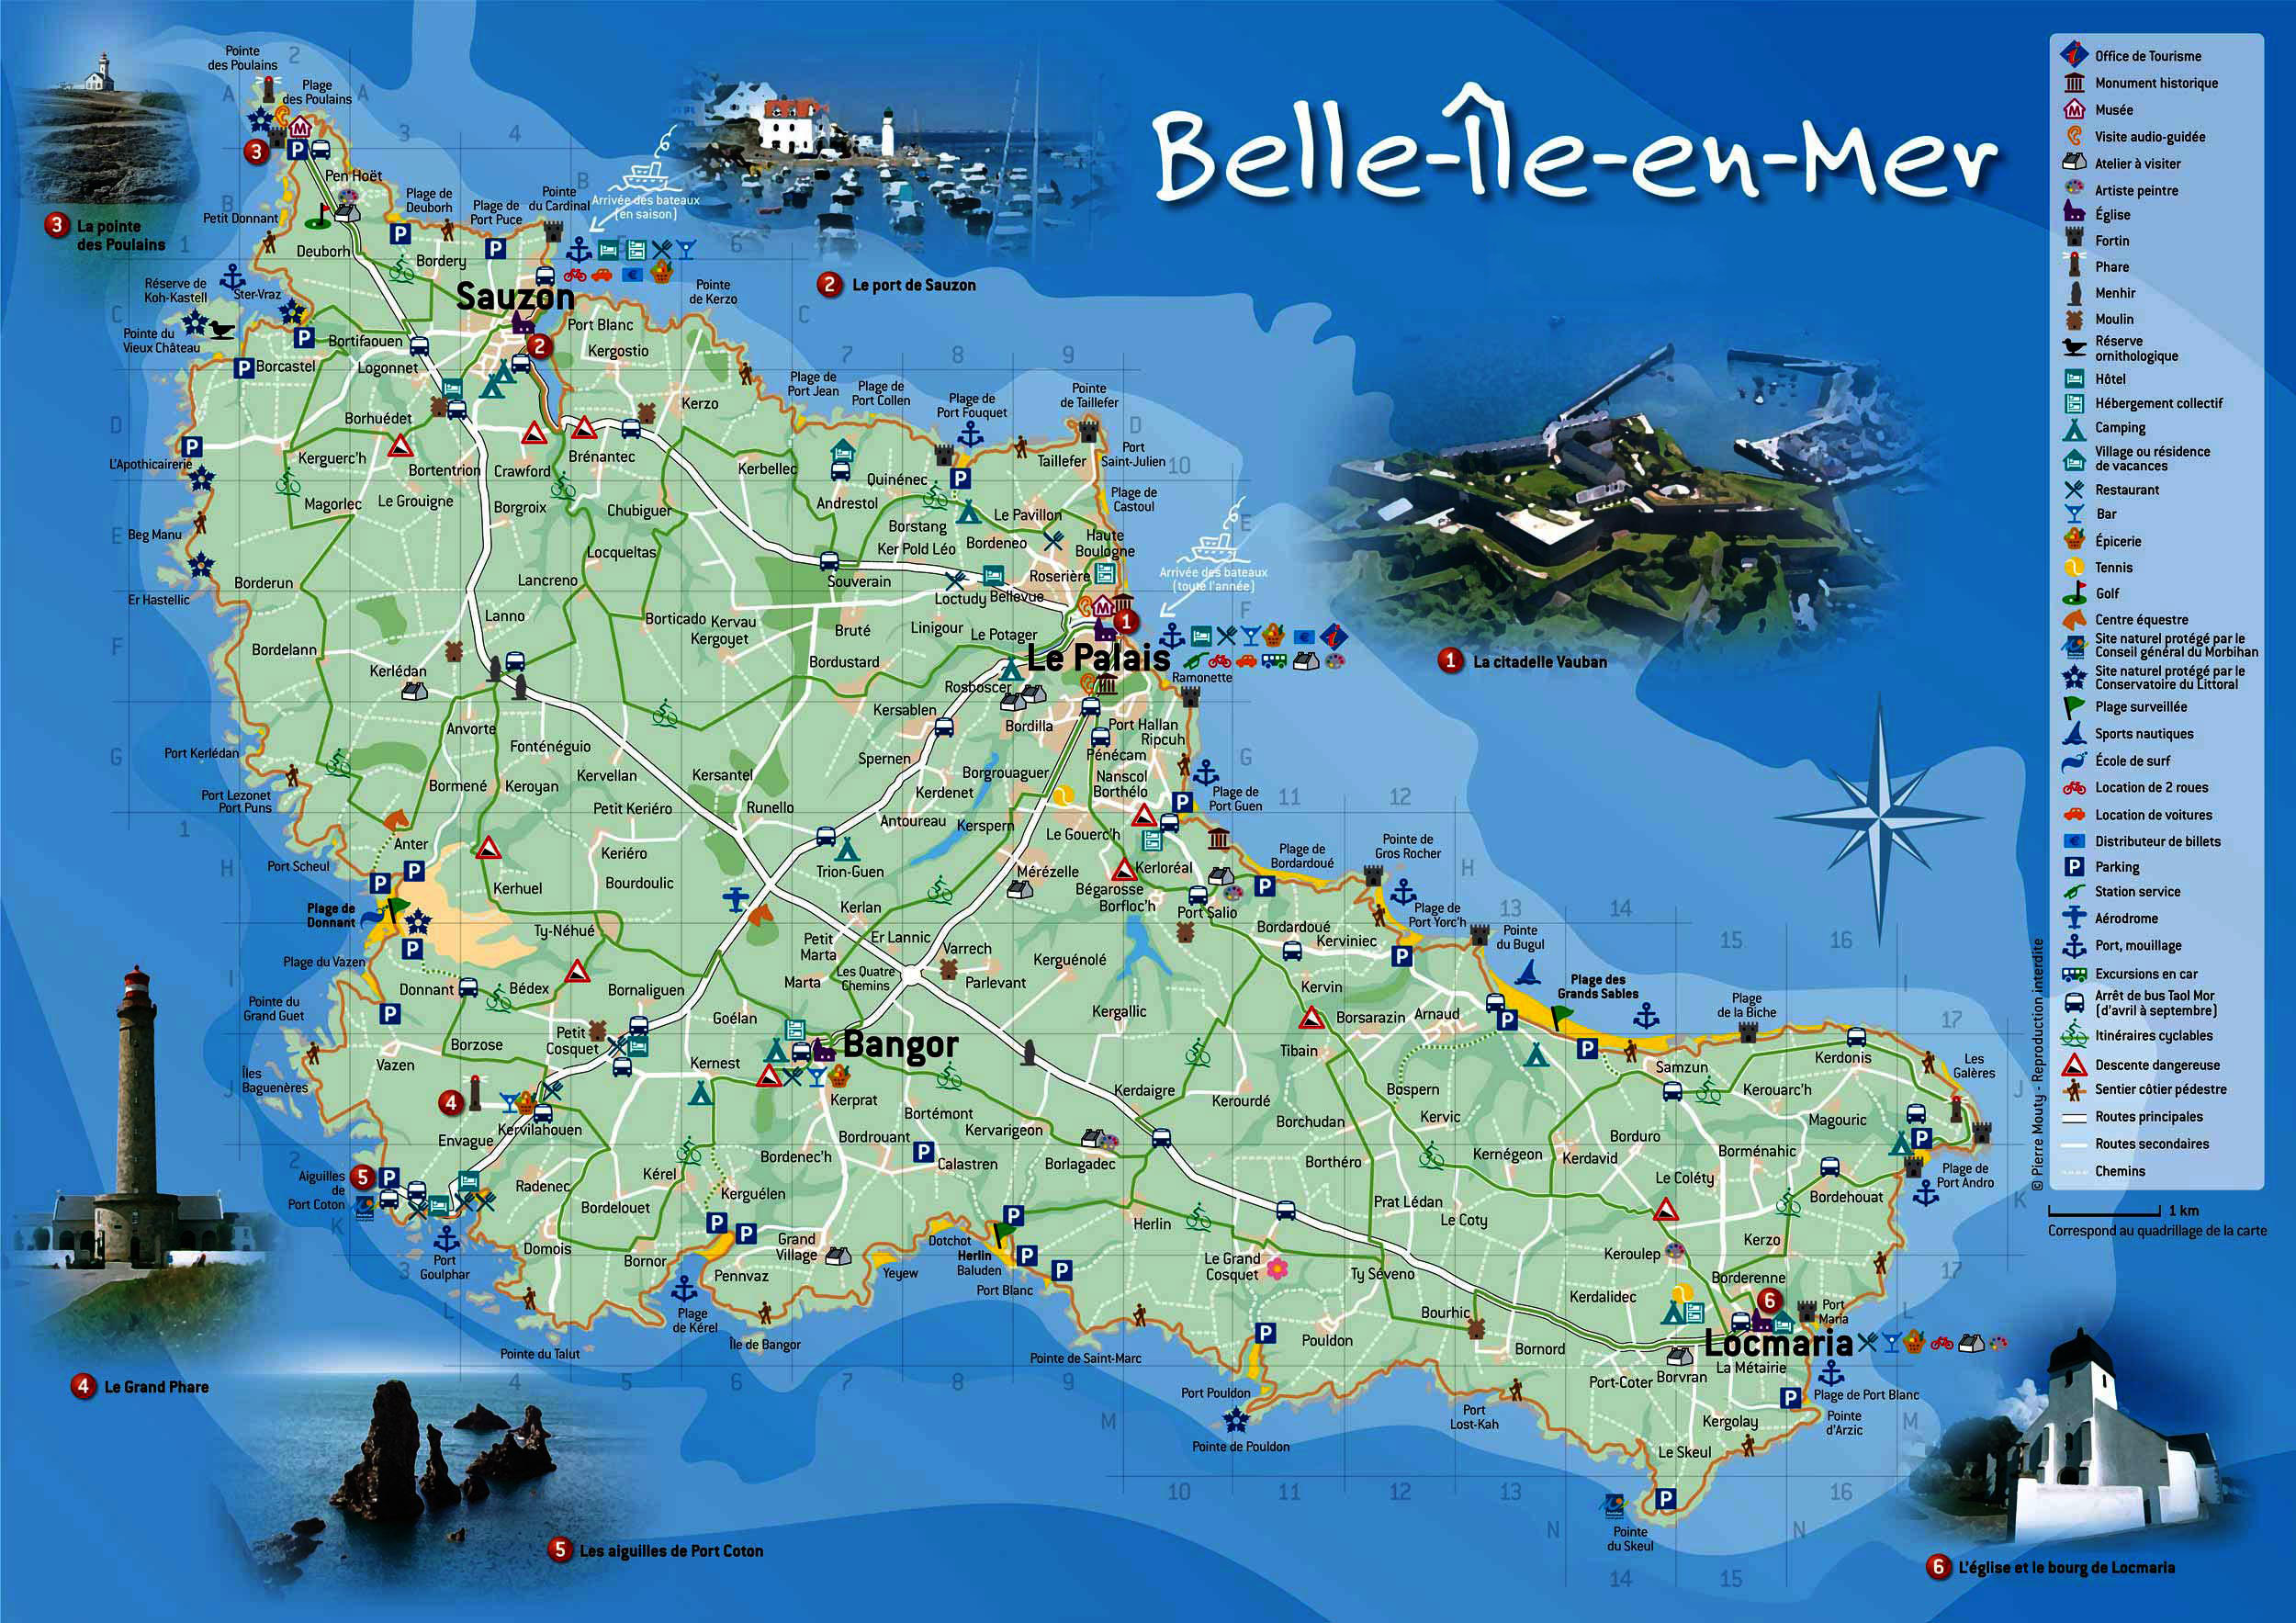 Map of Belle-Ile